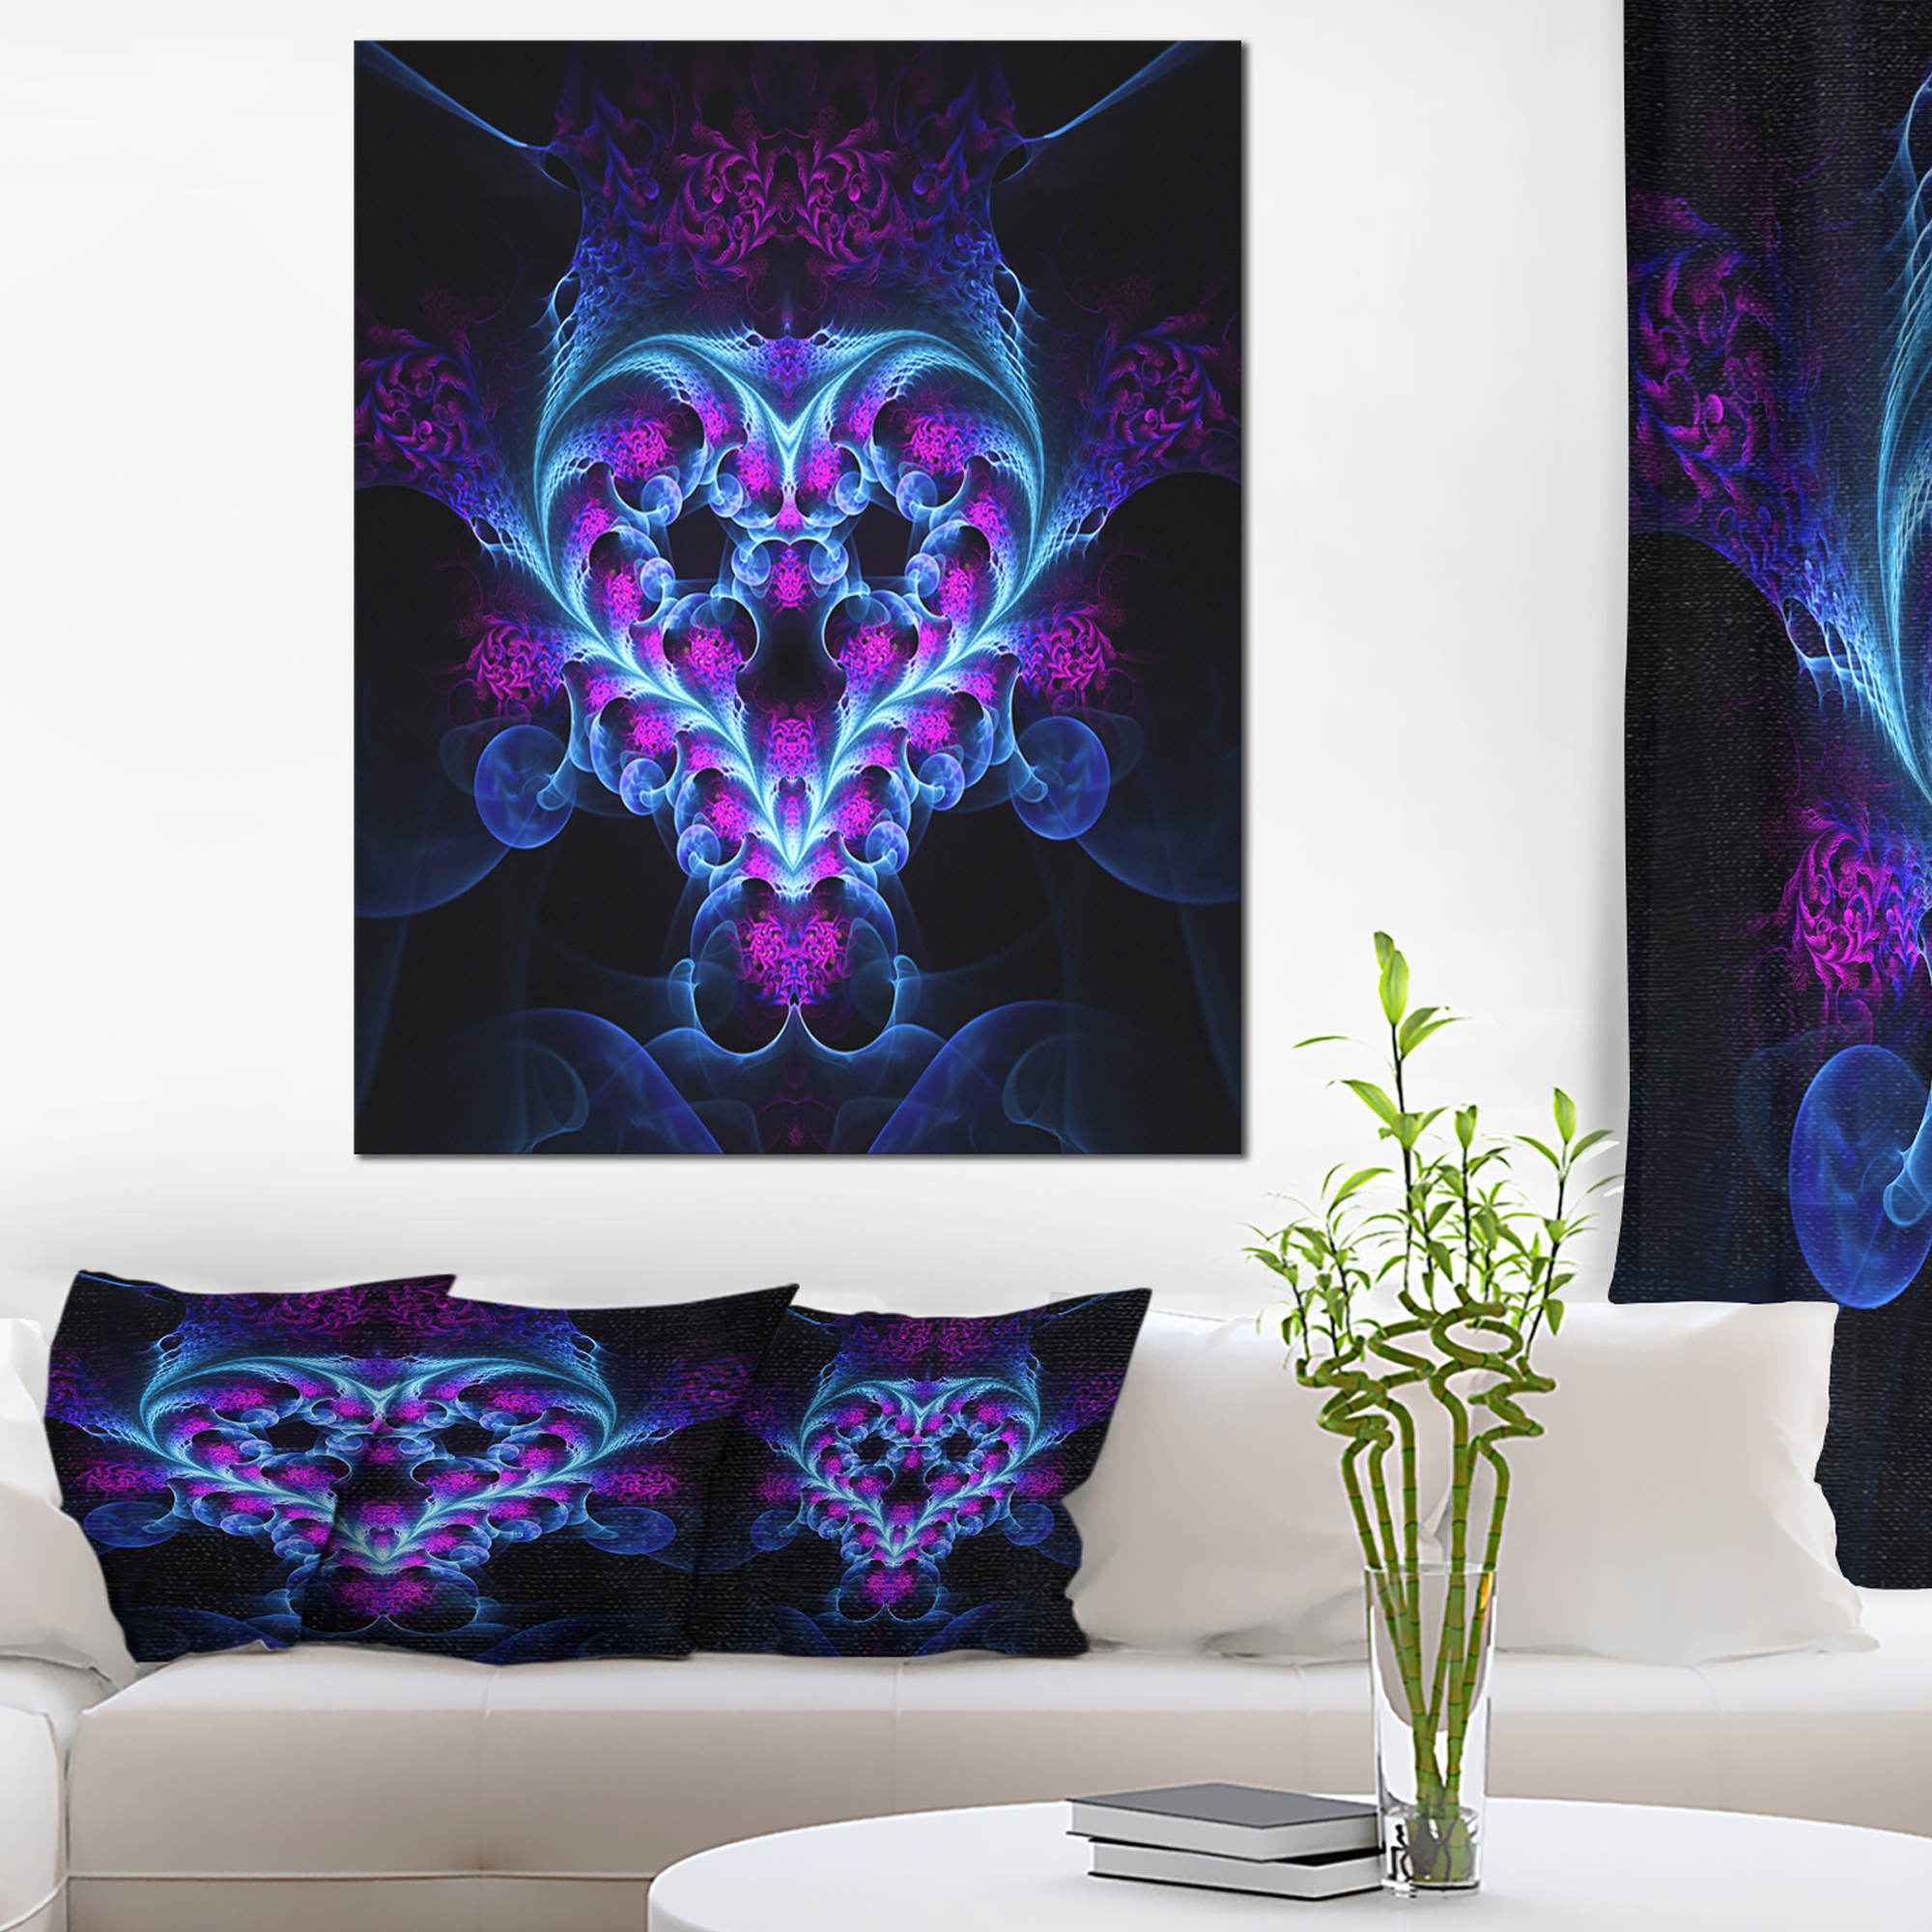 Bright Blue Large Fractal Flower Design - Abstract Art on Canvas - image 3 of 3